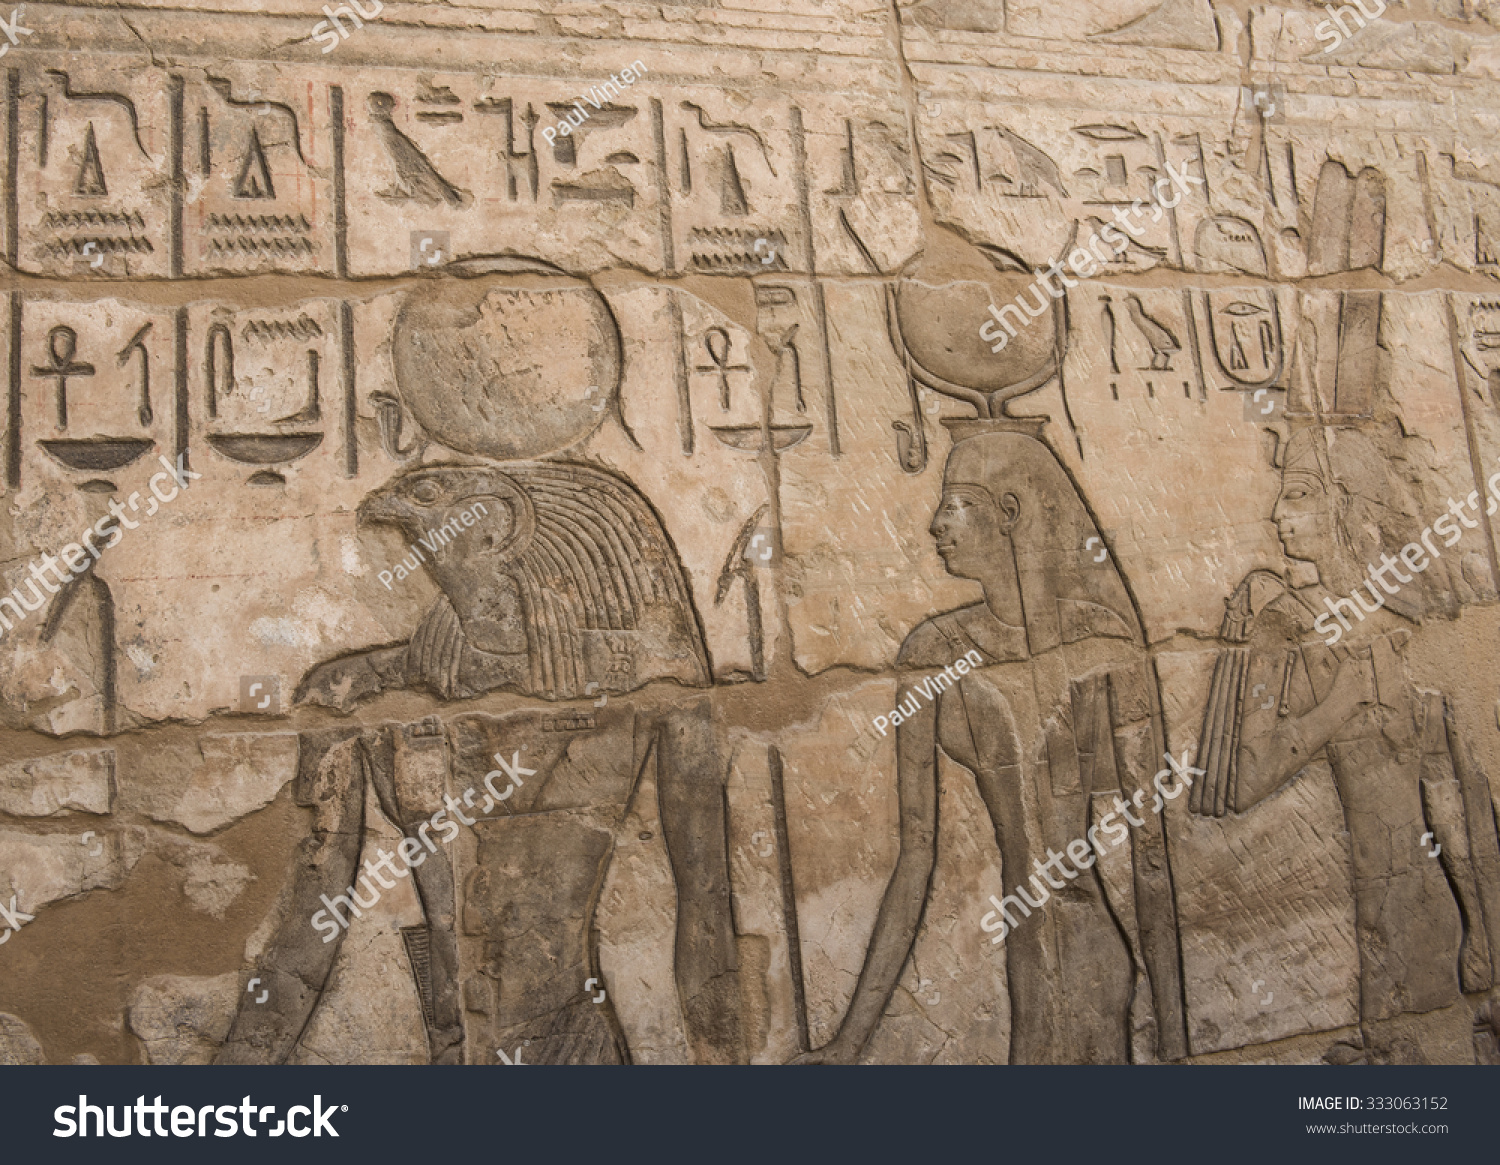 Ancient egyptian hieroglyphic carvings on a temple wall at